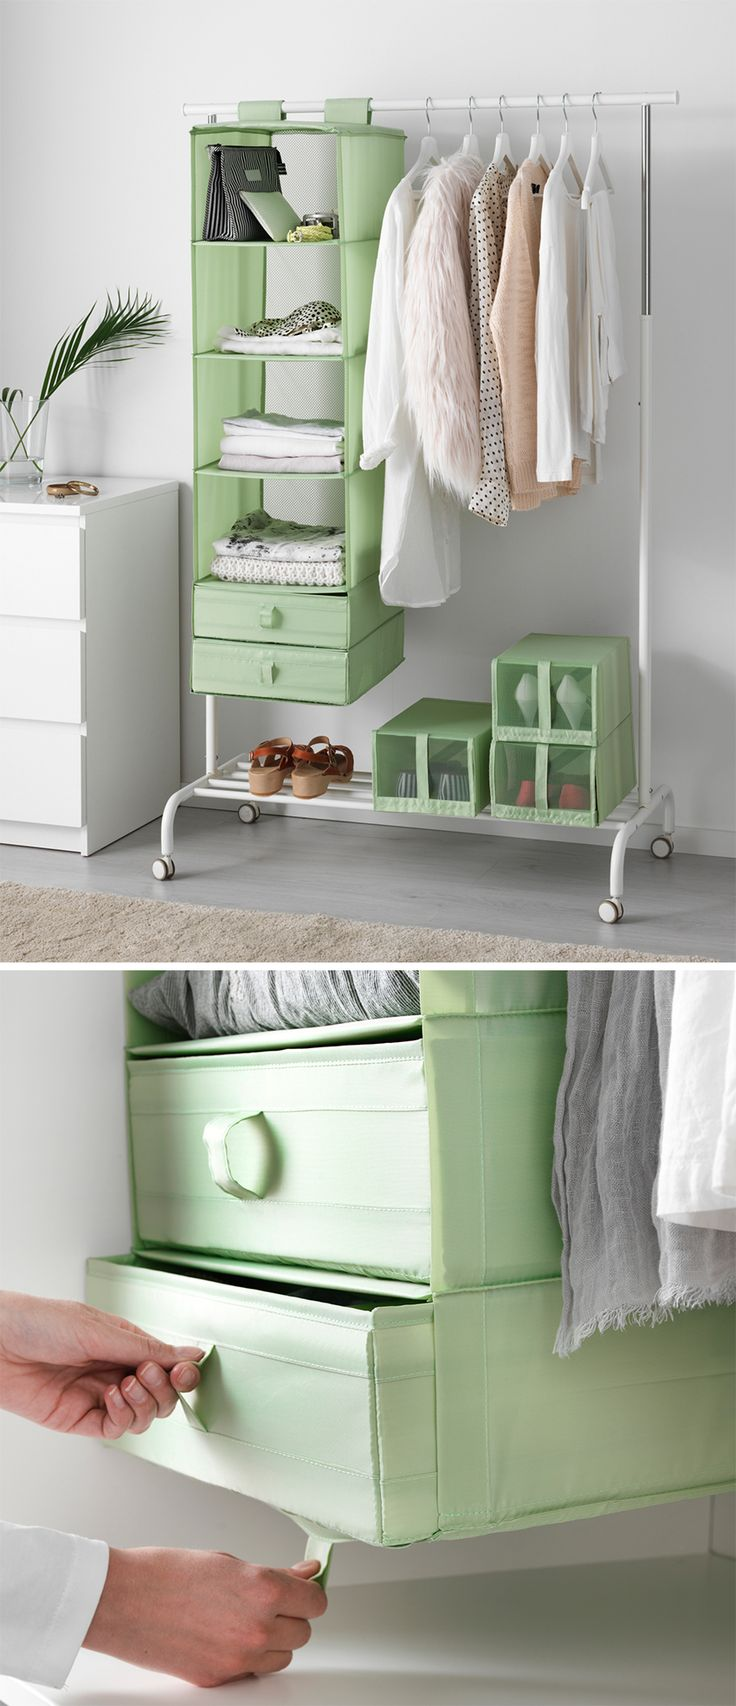 Your home improvements refference ikea closet organizer design - Your Home Improvements Refference Ikea Closet Storage Organizer Help Your Wardrobe Manage Your Clothes The Download